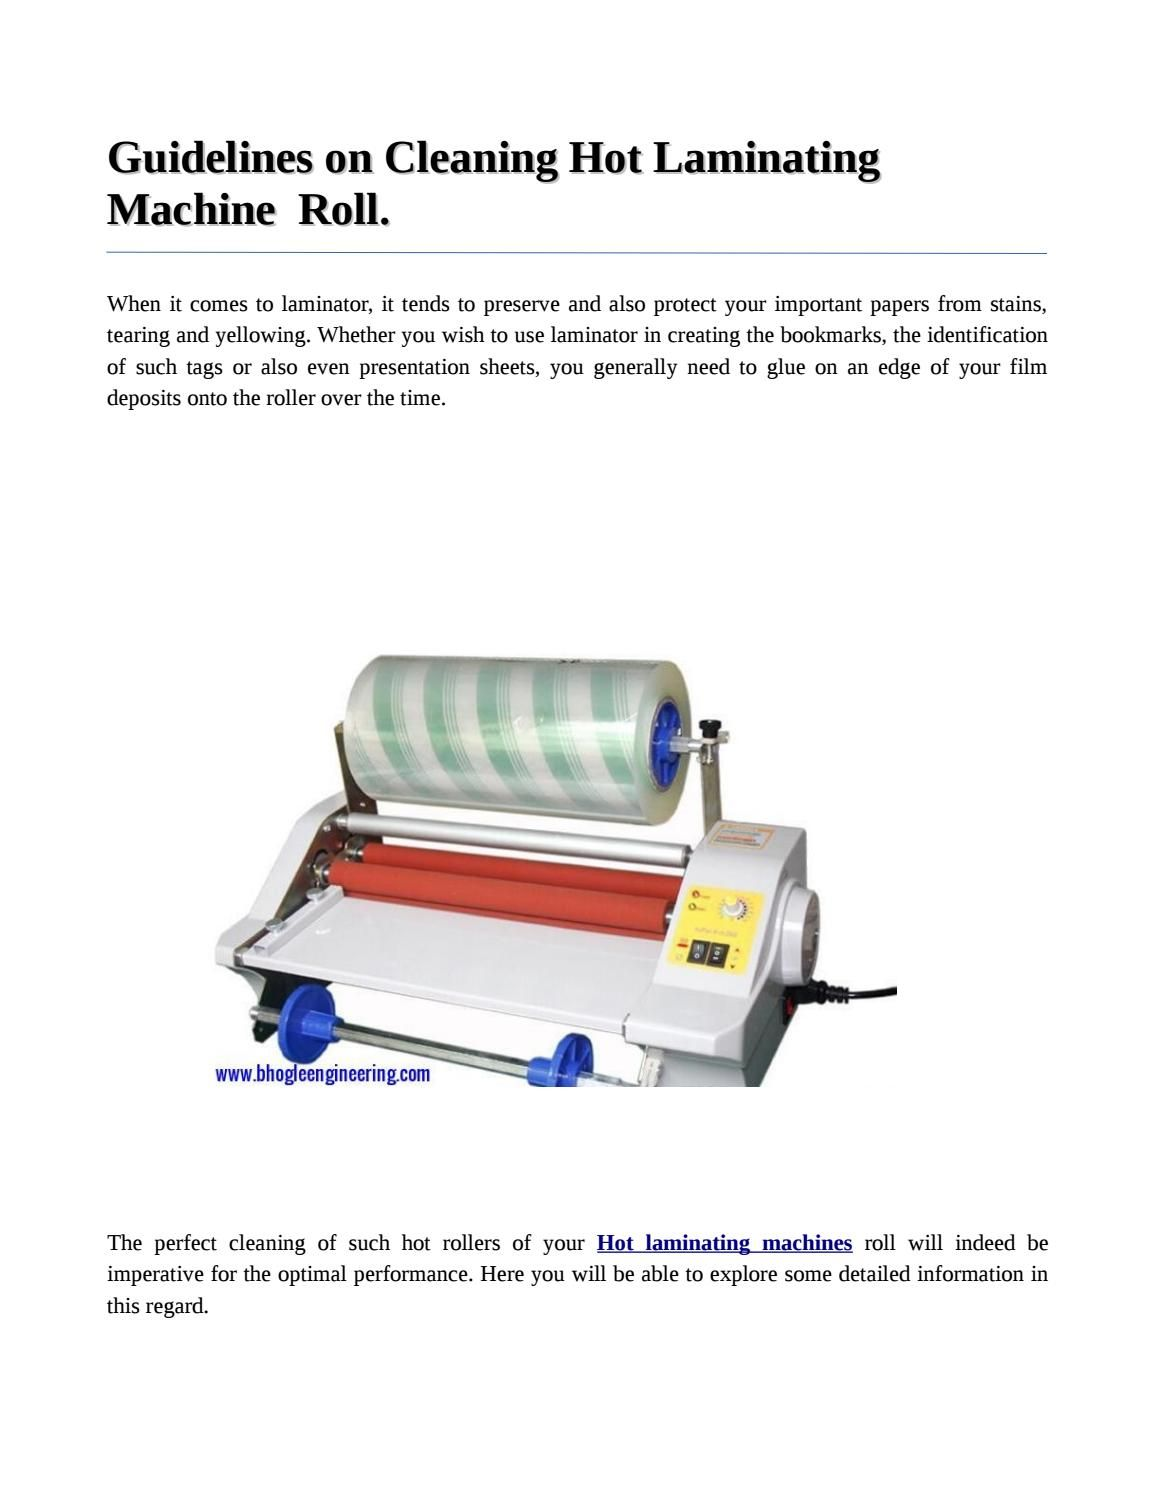 Guidelines On Cleaning Hot Laminating Machine Roll Clean Laminate Cleaning Laminators